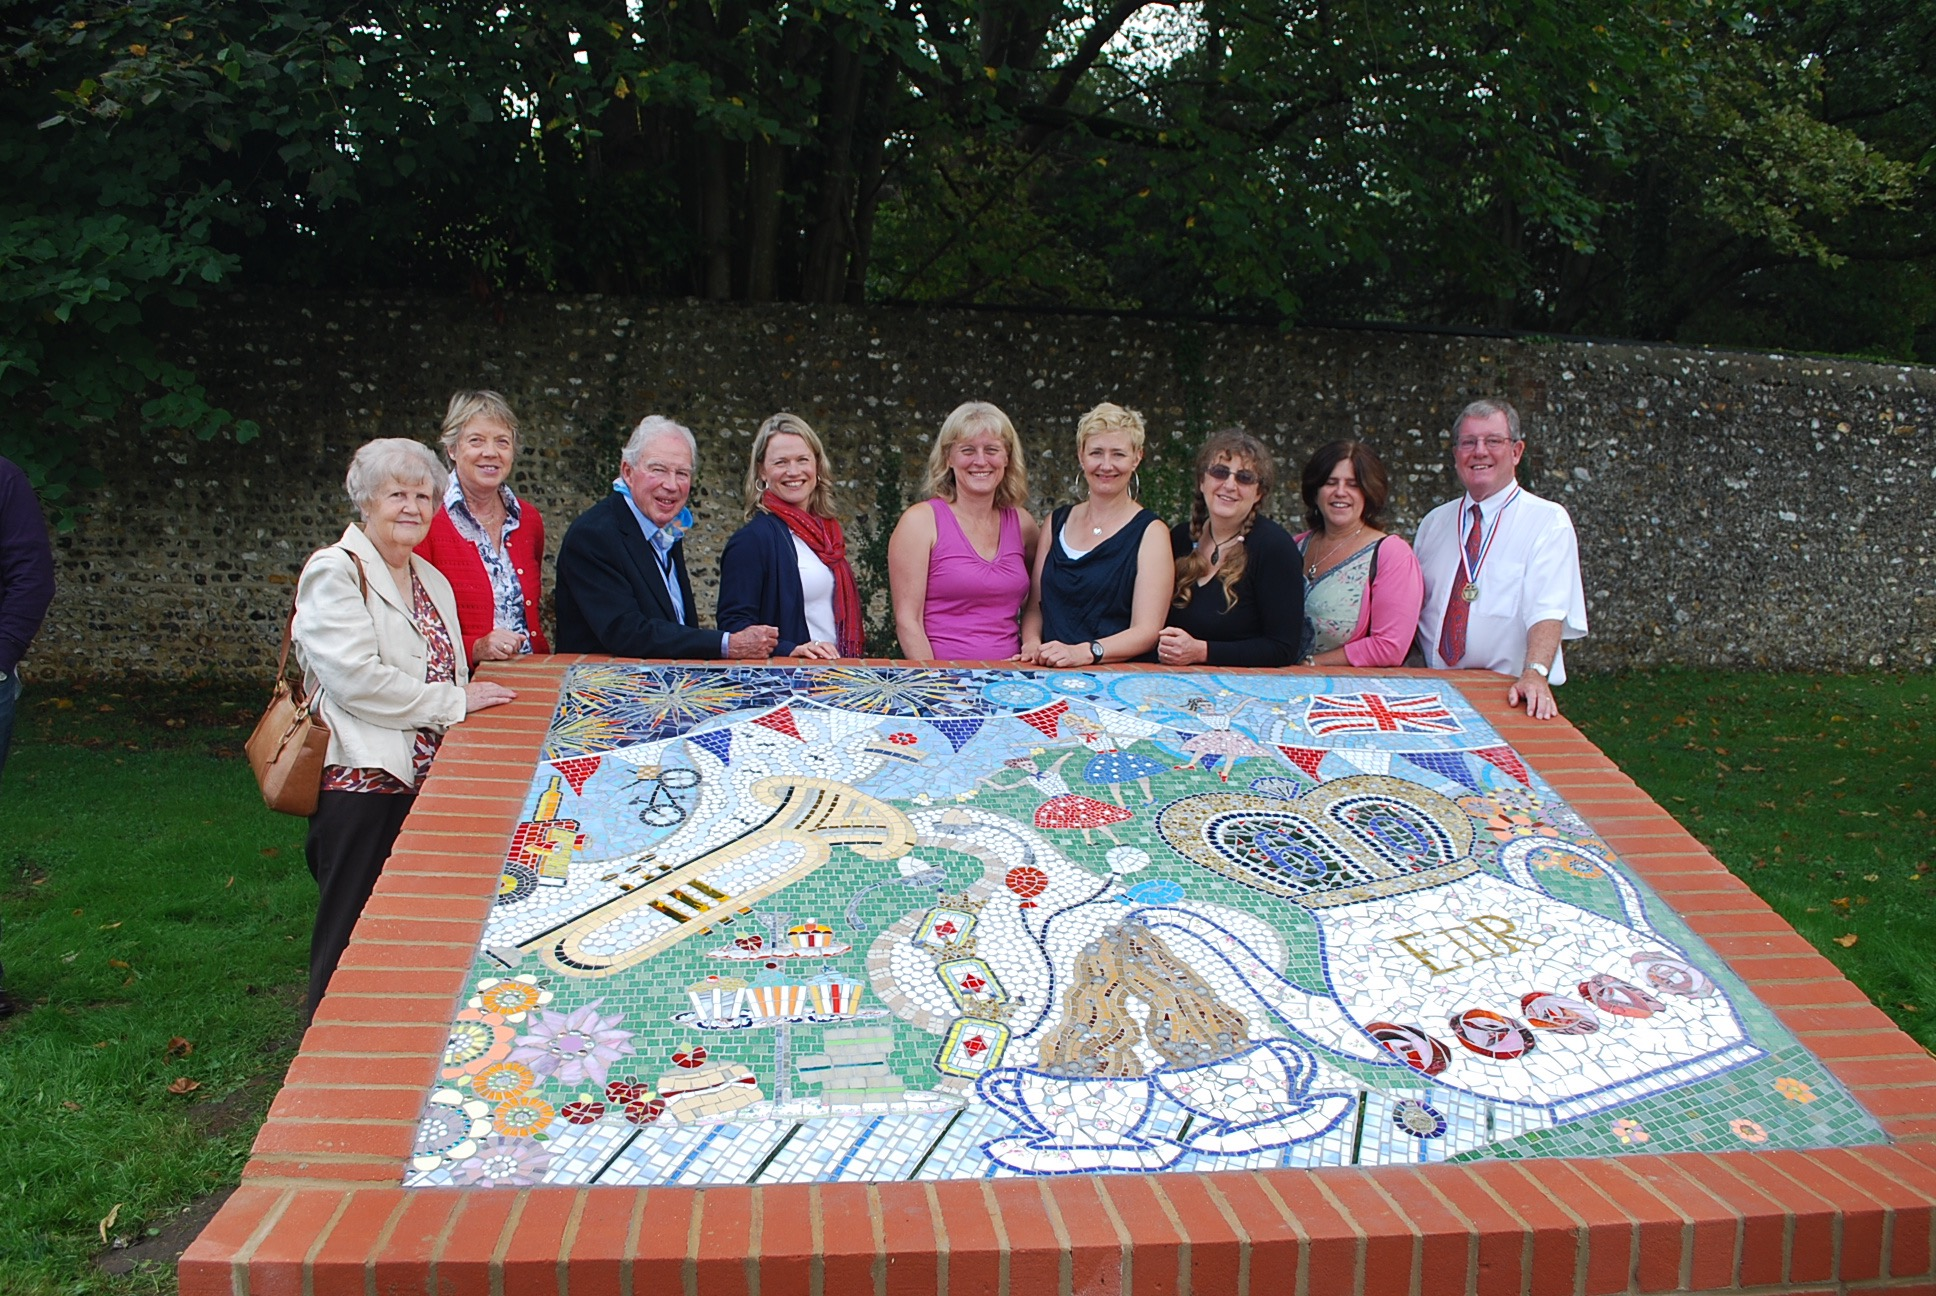 Commissioned prefabricated mosaics for parks